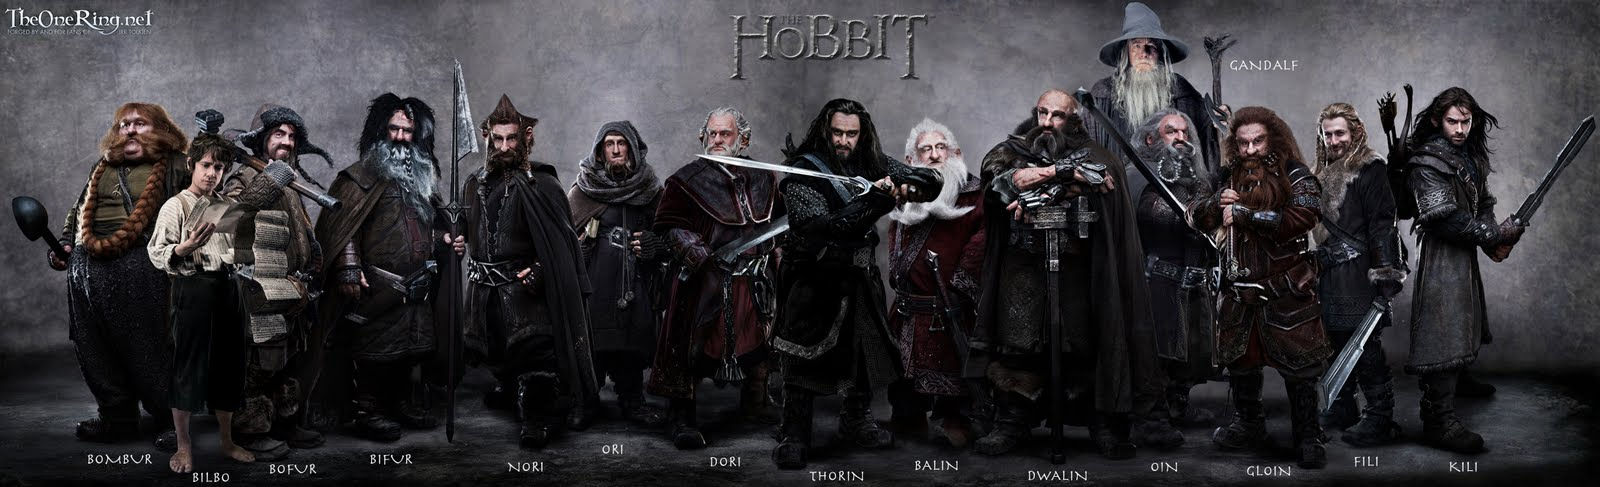 Kevin's Miniatures & Hobby Table: The Hobbit